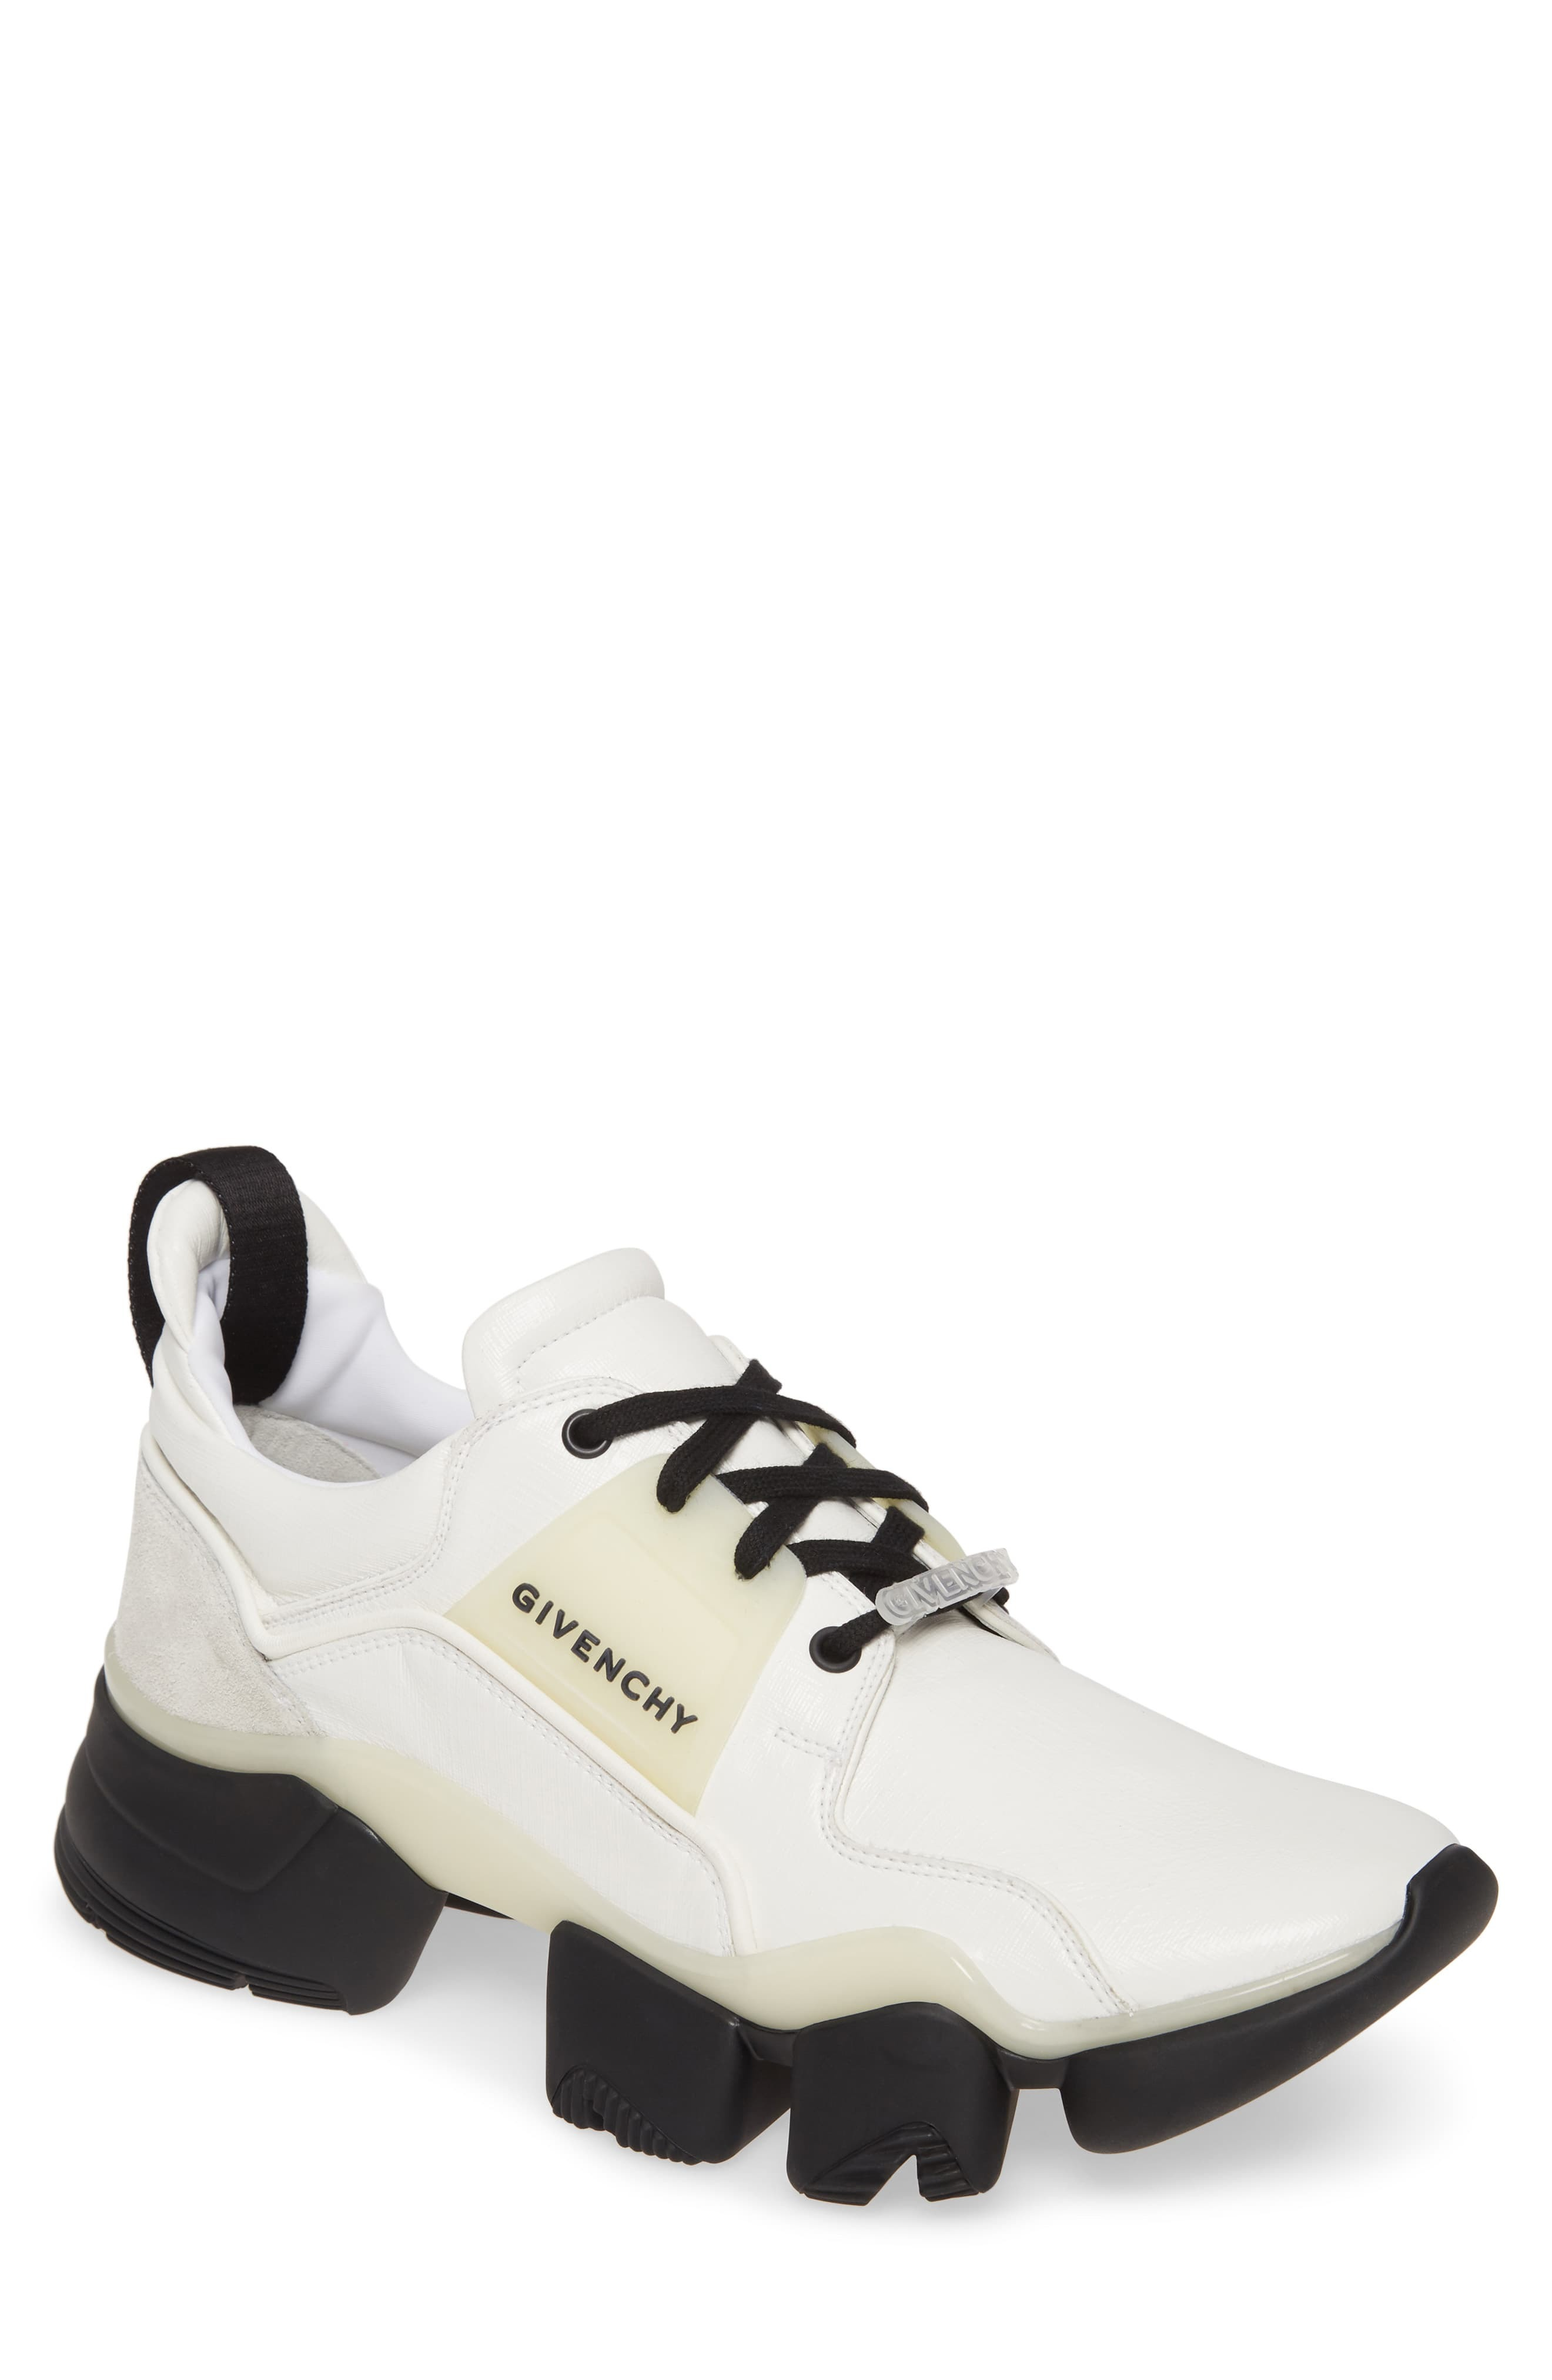 Givenchy Jaw Glow In The Dark Sneaker